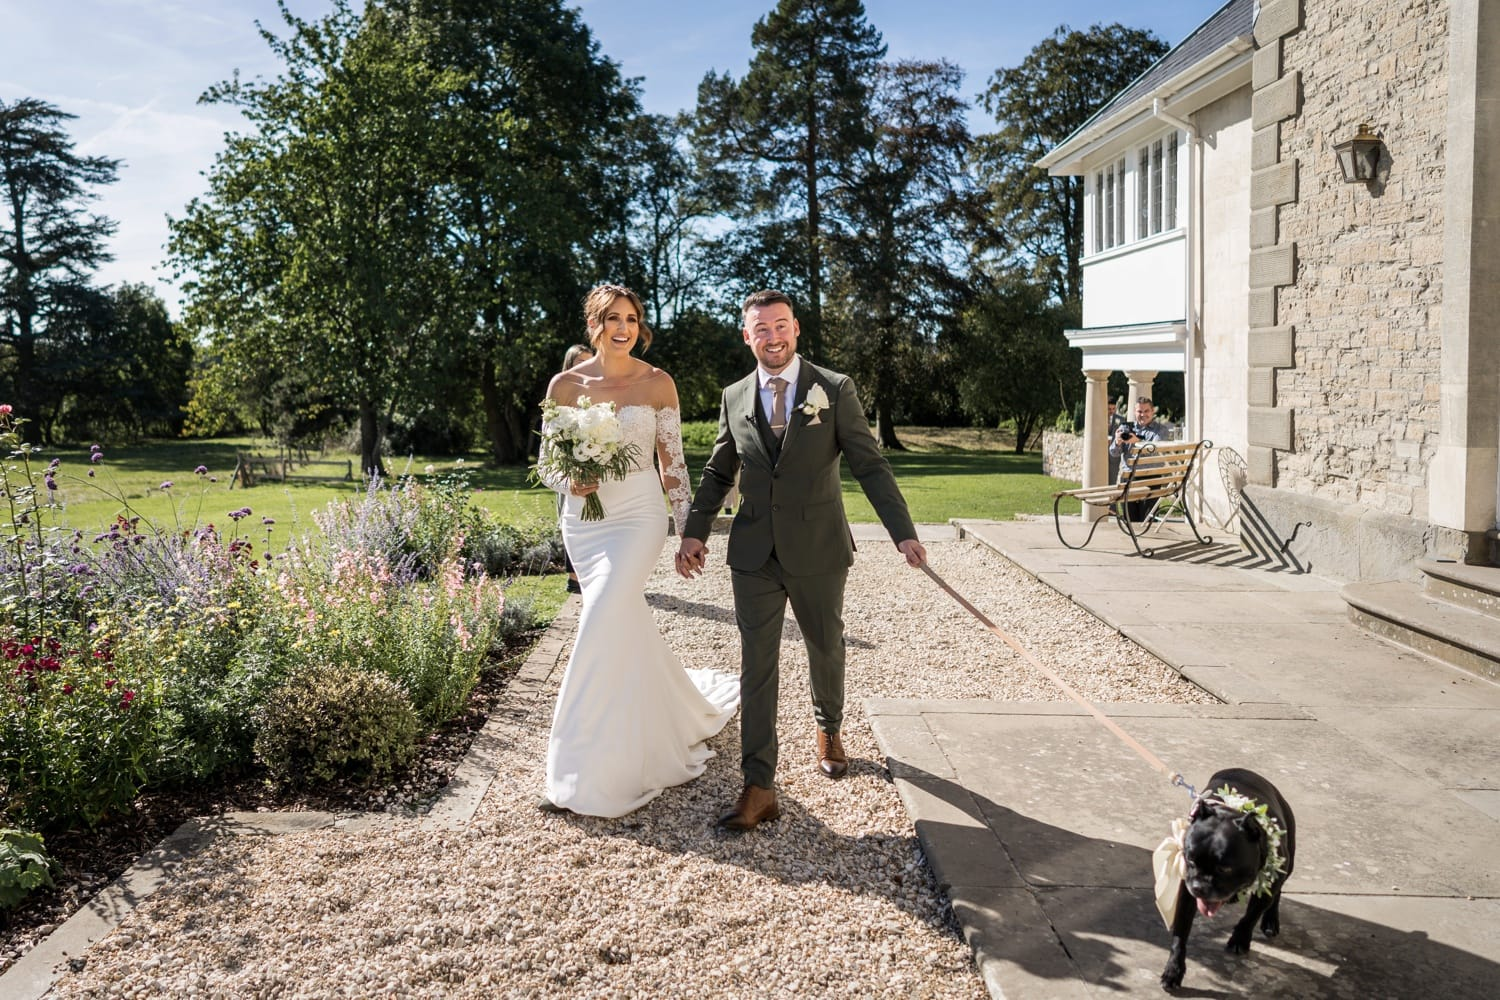 Wedding at St Tewdrics House, Monmouthshire, South Wales